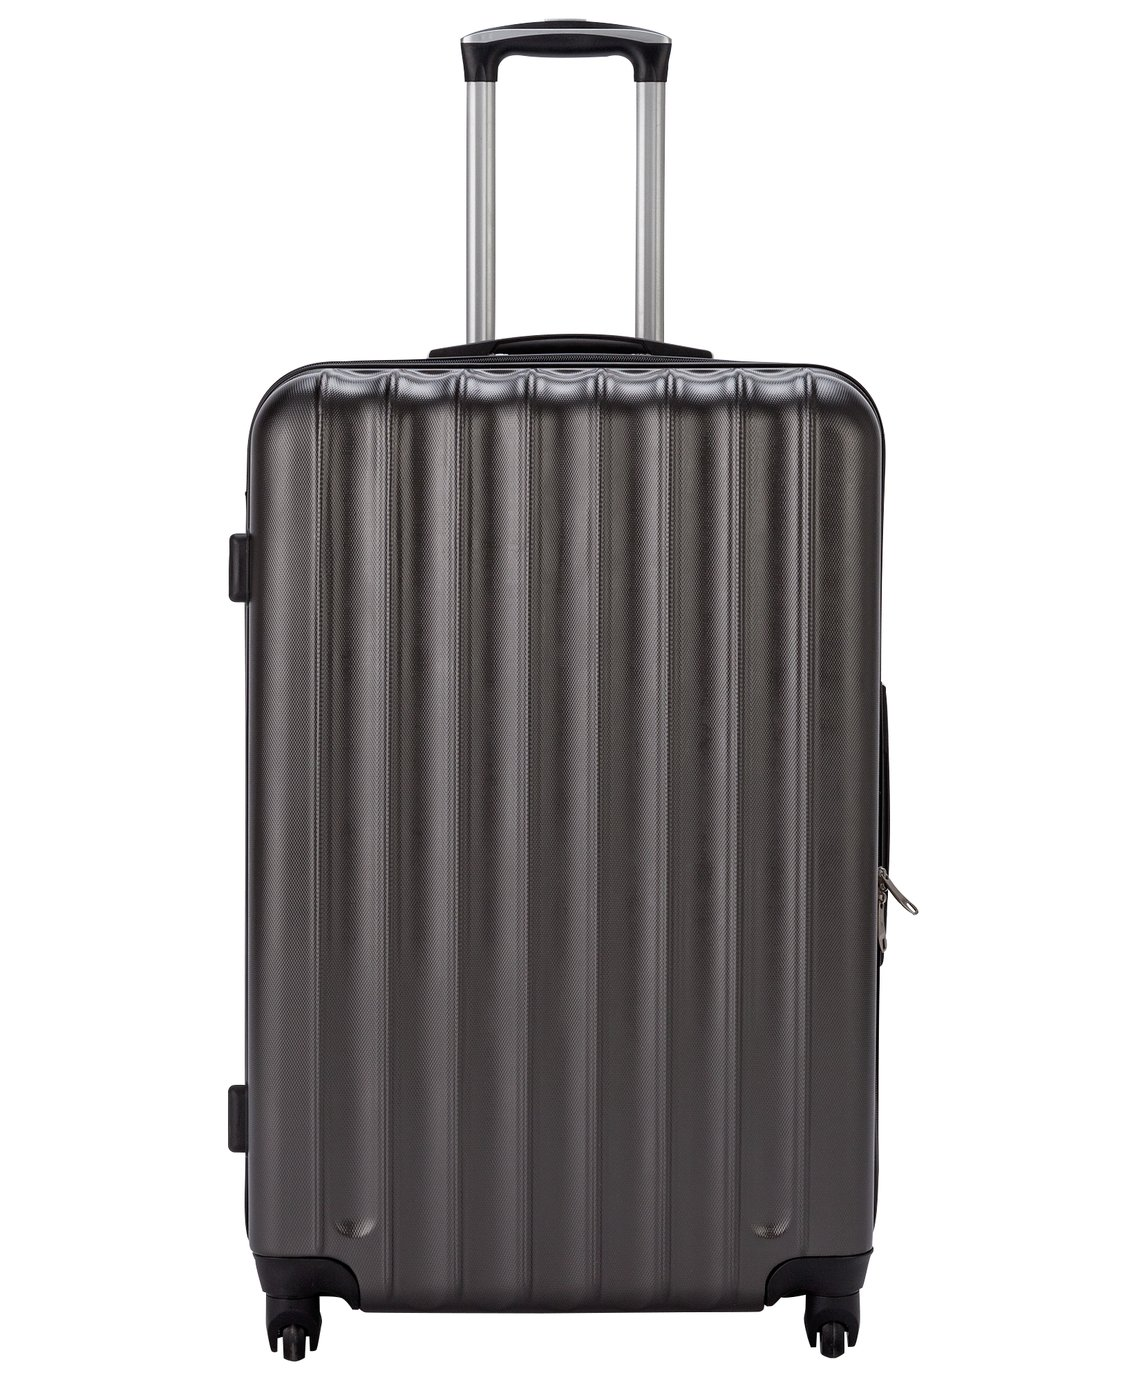 Large 4 Wheel Hard Suitcase - Charcoal